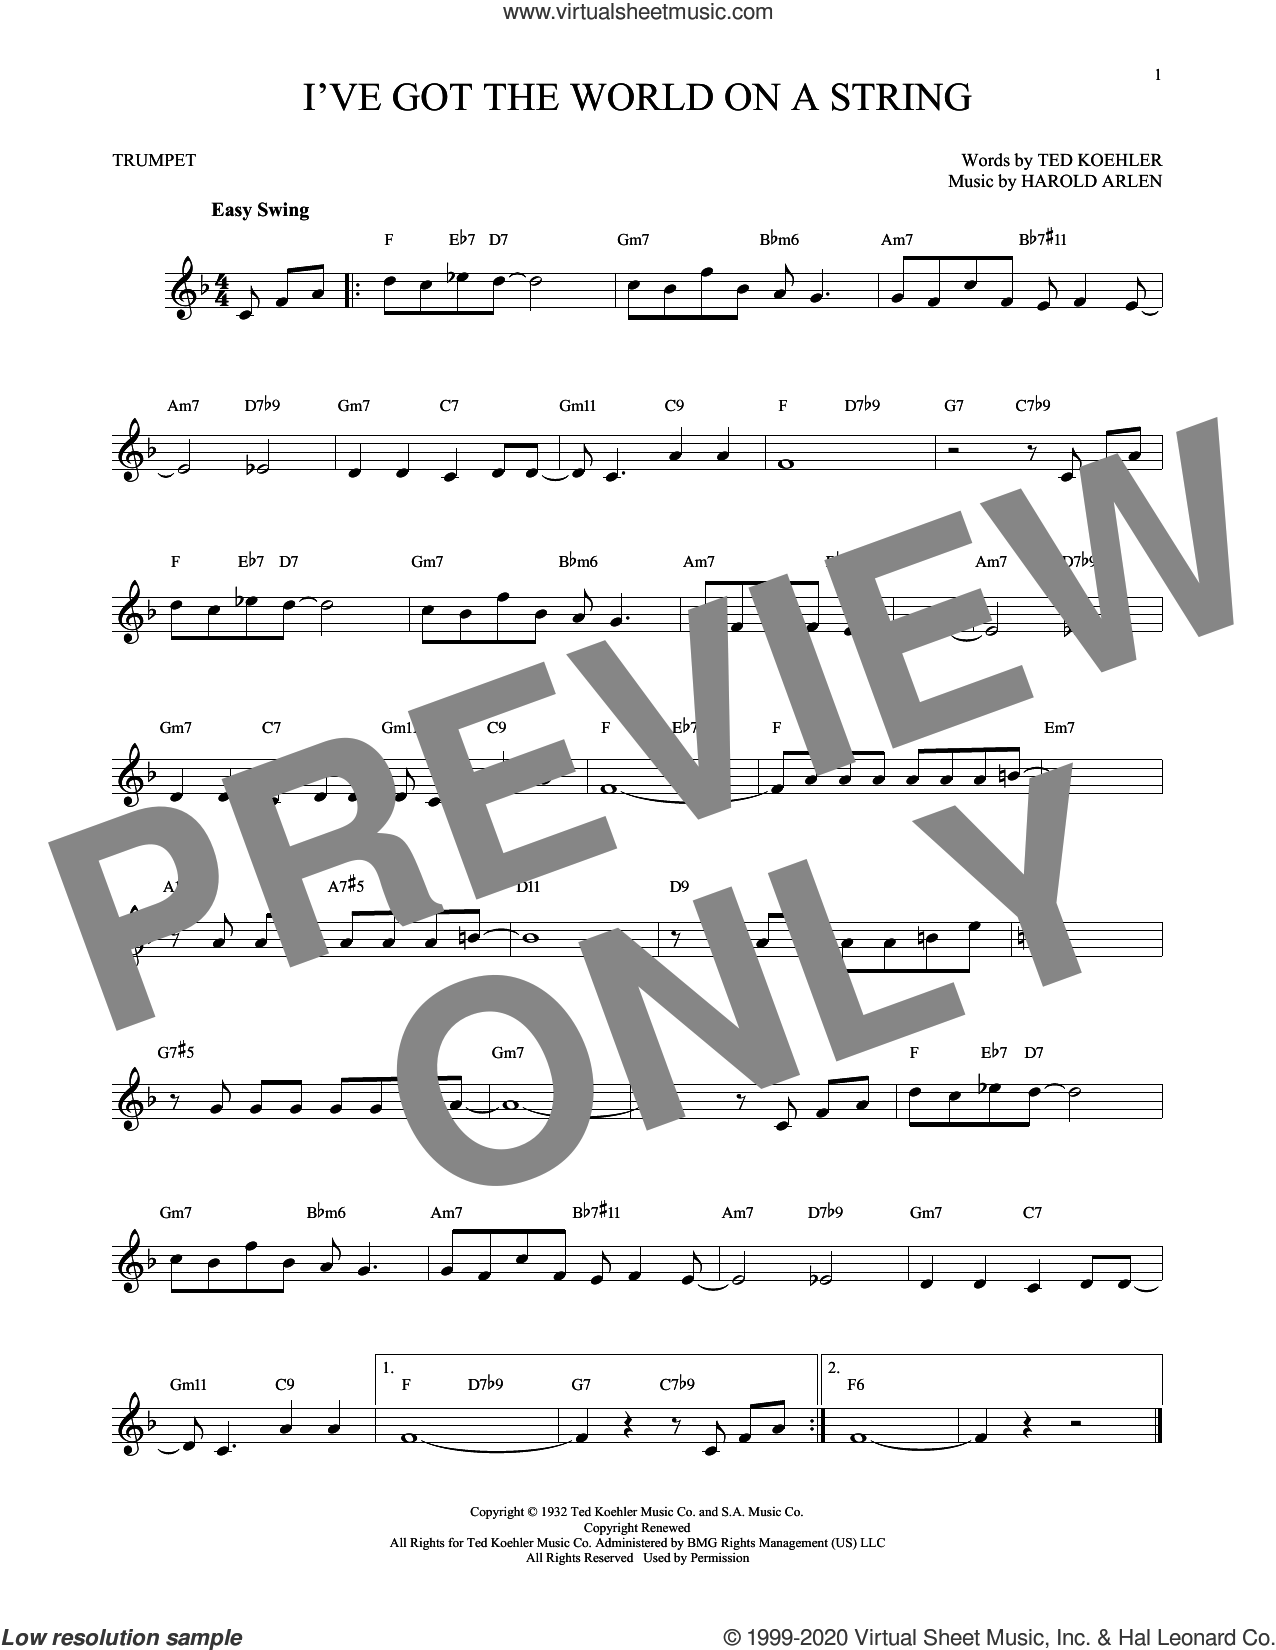 I've Got The World On A String sheet music for trumpet solo by Harold Arlen, Dick Hyman and Ted Koehler, intermediate skill level